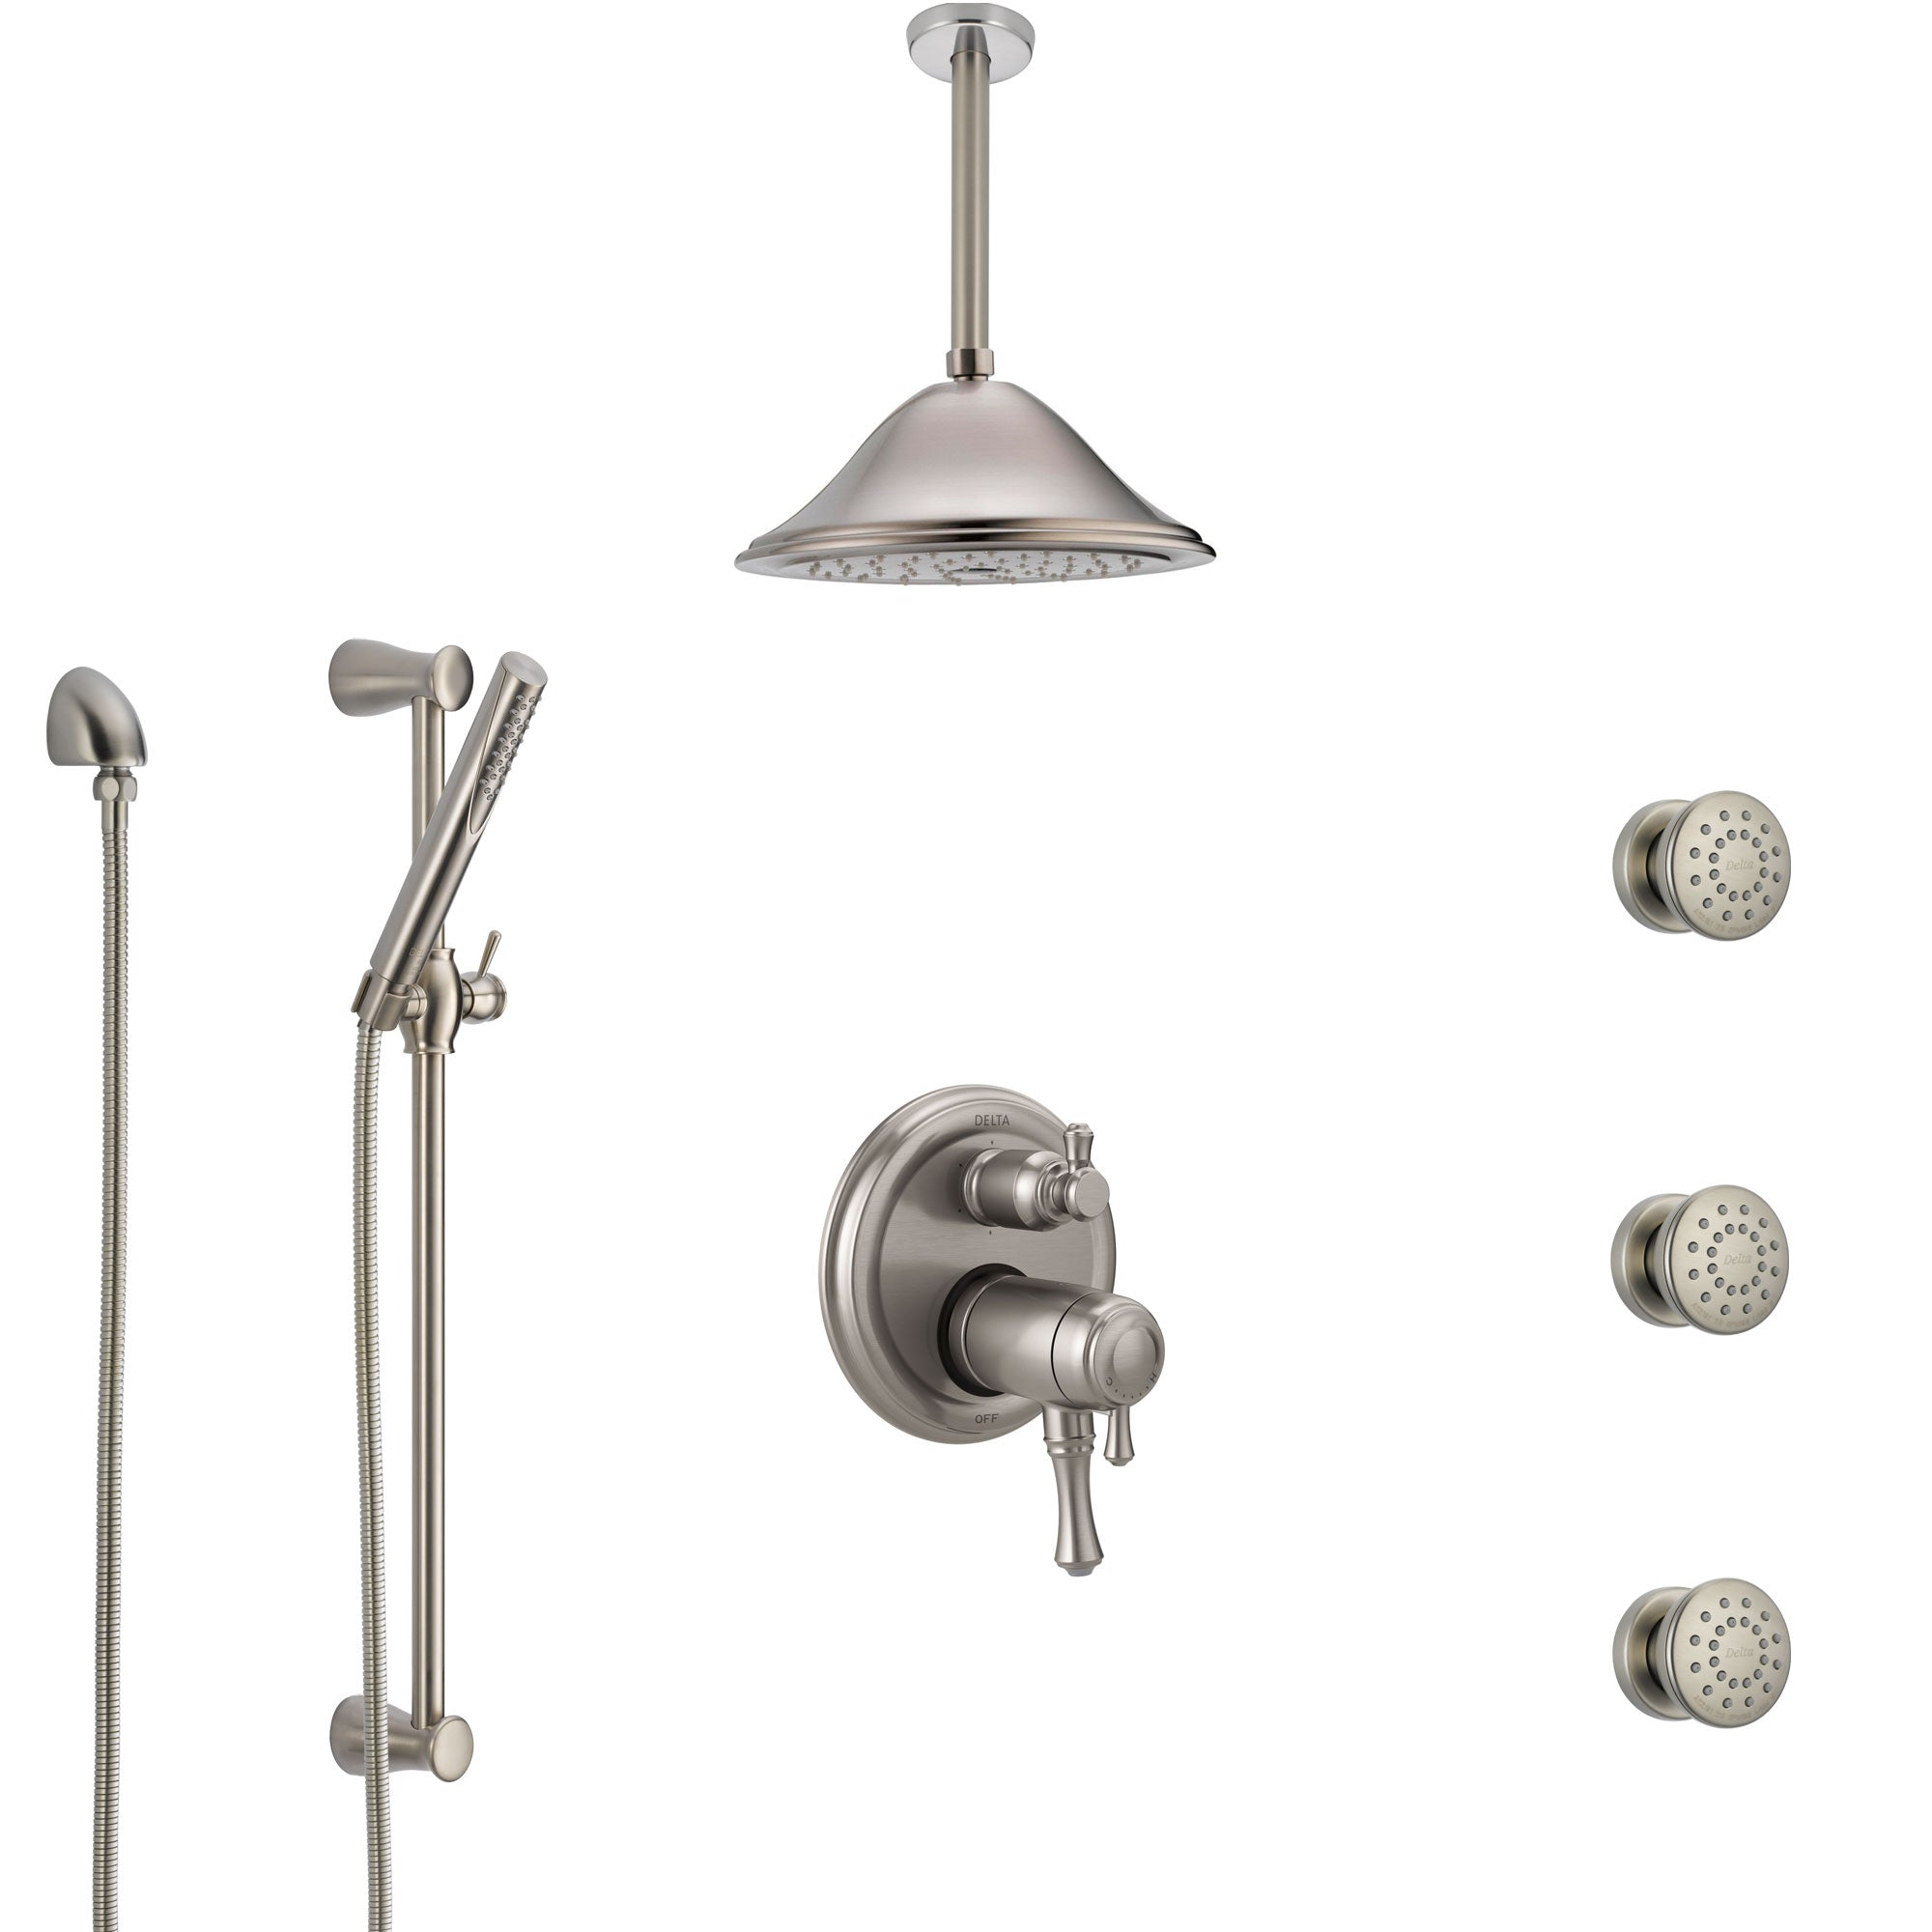 Delta Cassidy Dual Thermostatic Control Stainless Steel Finish Shower System, Ceiling Showerhead, 3 Body Jets, Hand Spray SS27T997SS5